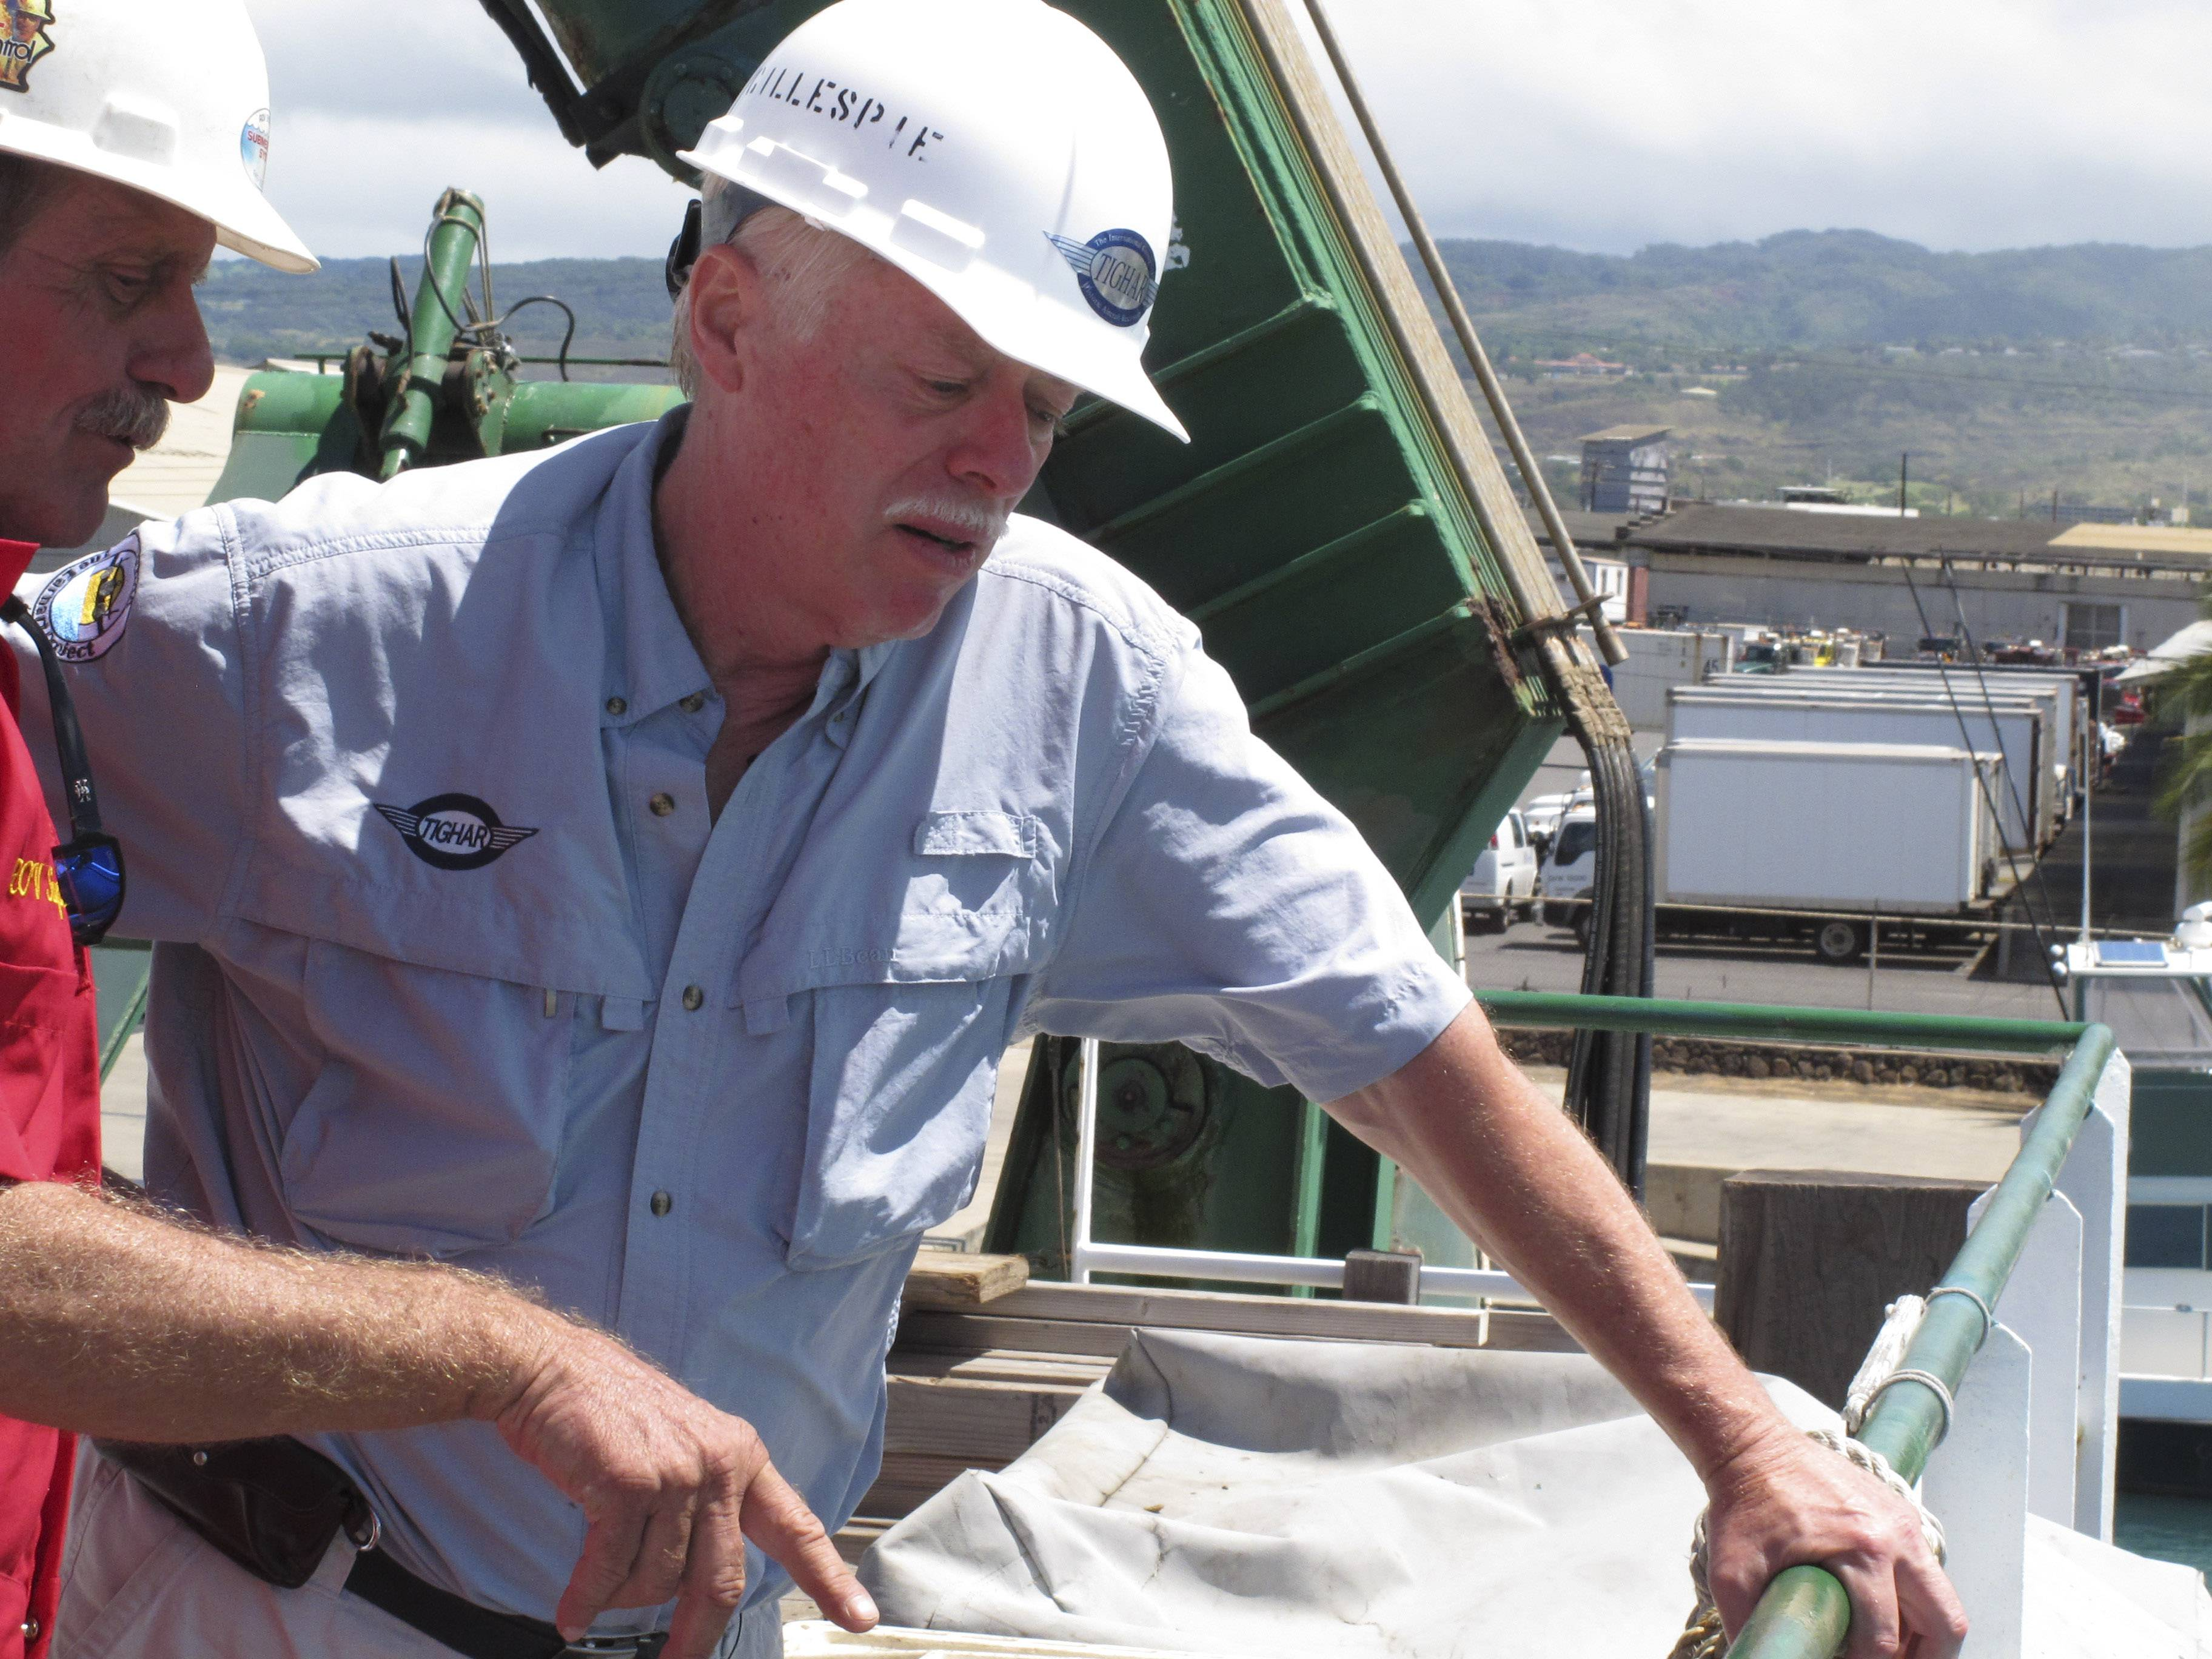 In 2012 Ric Gillespie, right, founder of The International Group for Historic Aircraft Recovery, watches equipment testing alongside Wolfgang Burnside from aboard a ship at port in Honolulu. A federal judge has dismissed a Wyoming man's lawsuit claiming a group secretly found the missing airplane of aviation pioneer Amelia Earhart in the South Pacific but kept it quiet so it could continue to raise funds for the search.